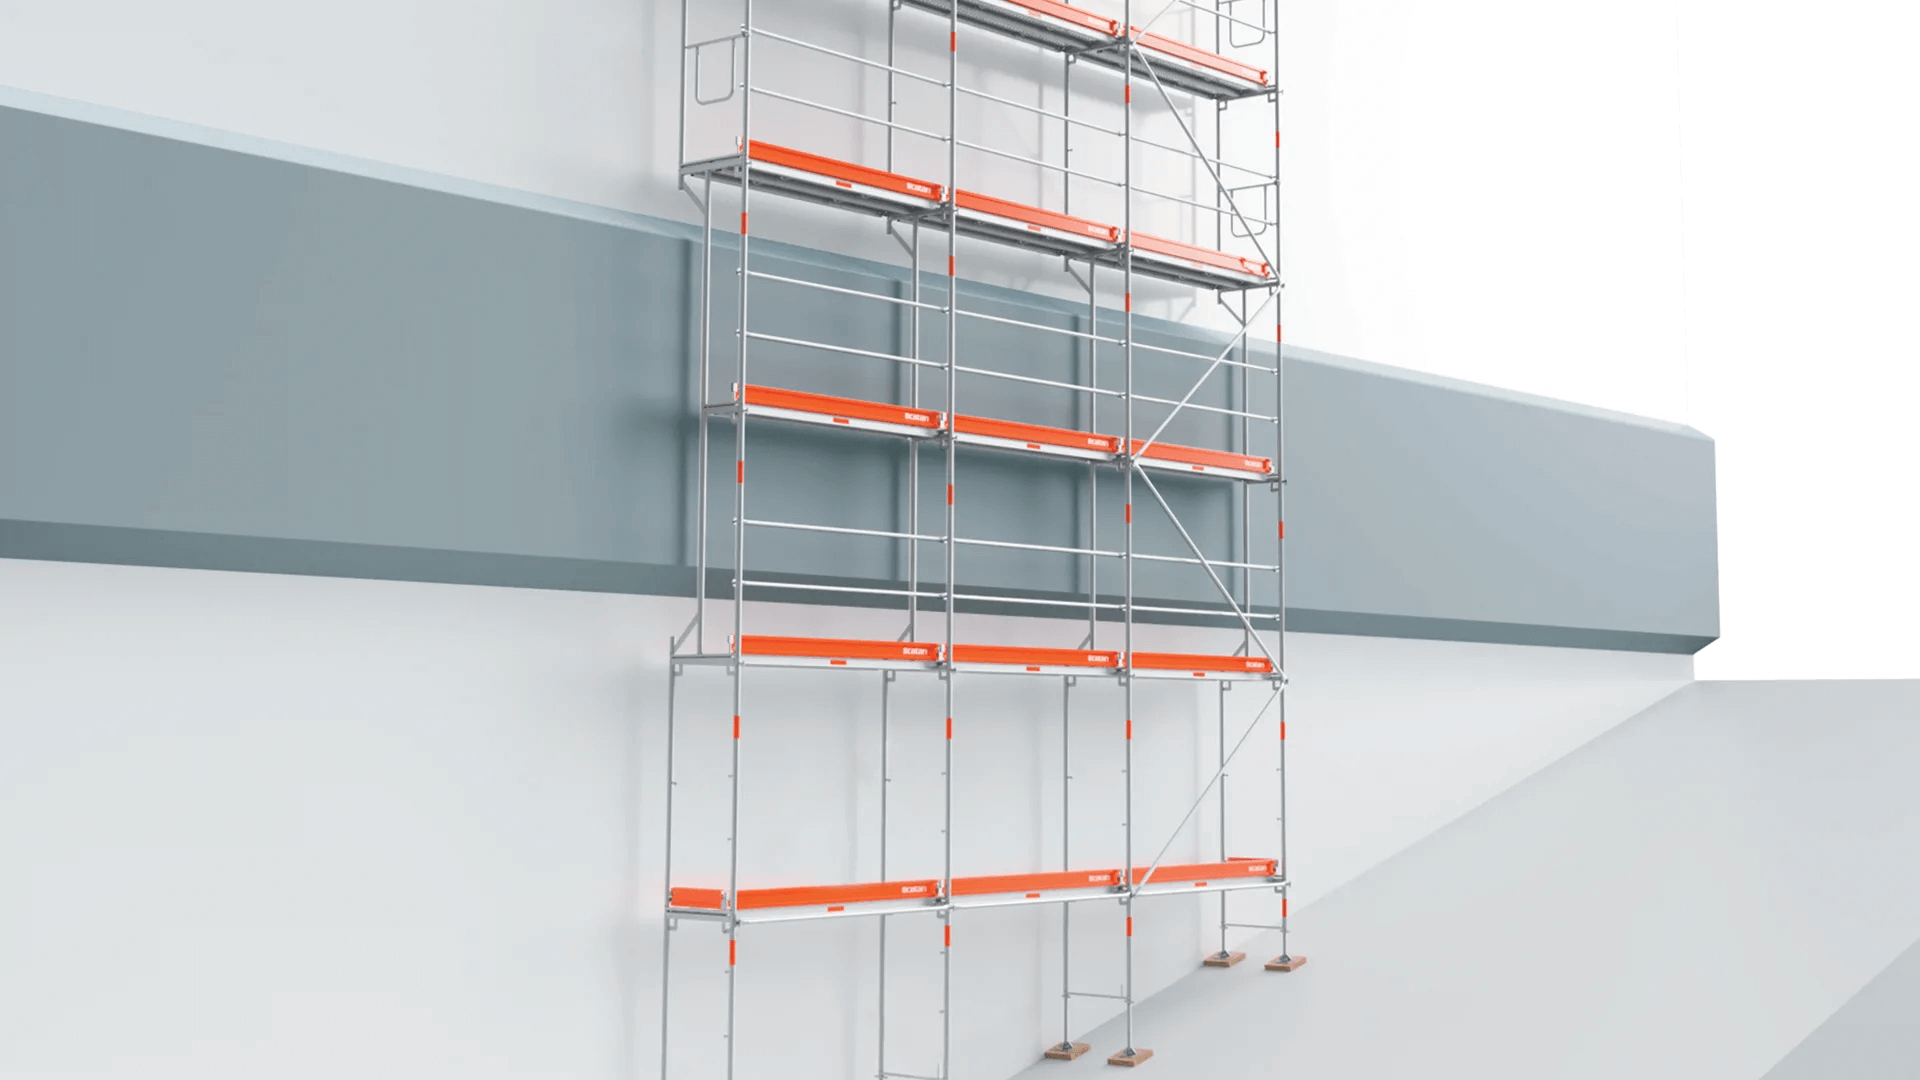 sfa48 scpecial scaffold frames, scaffold for roofing